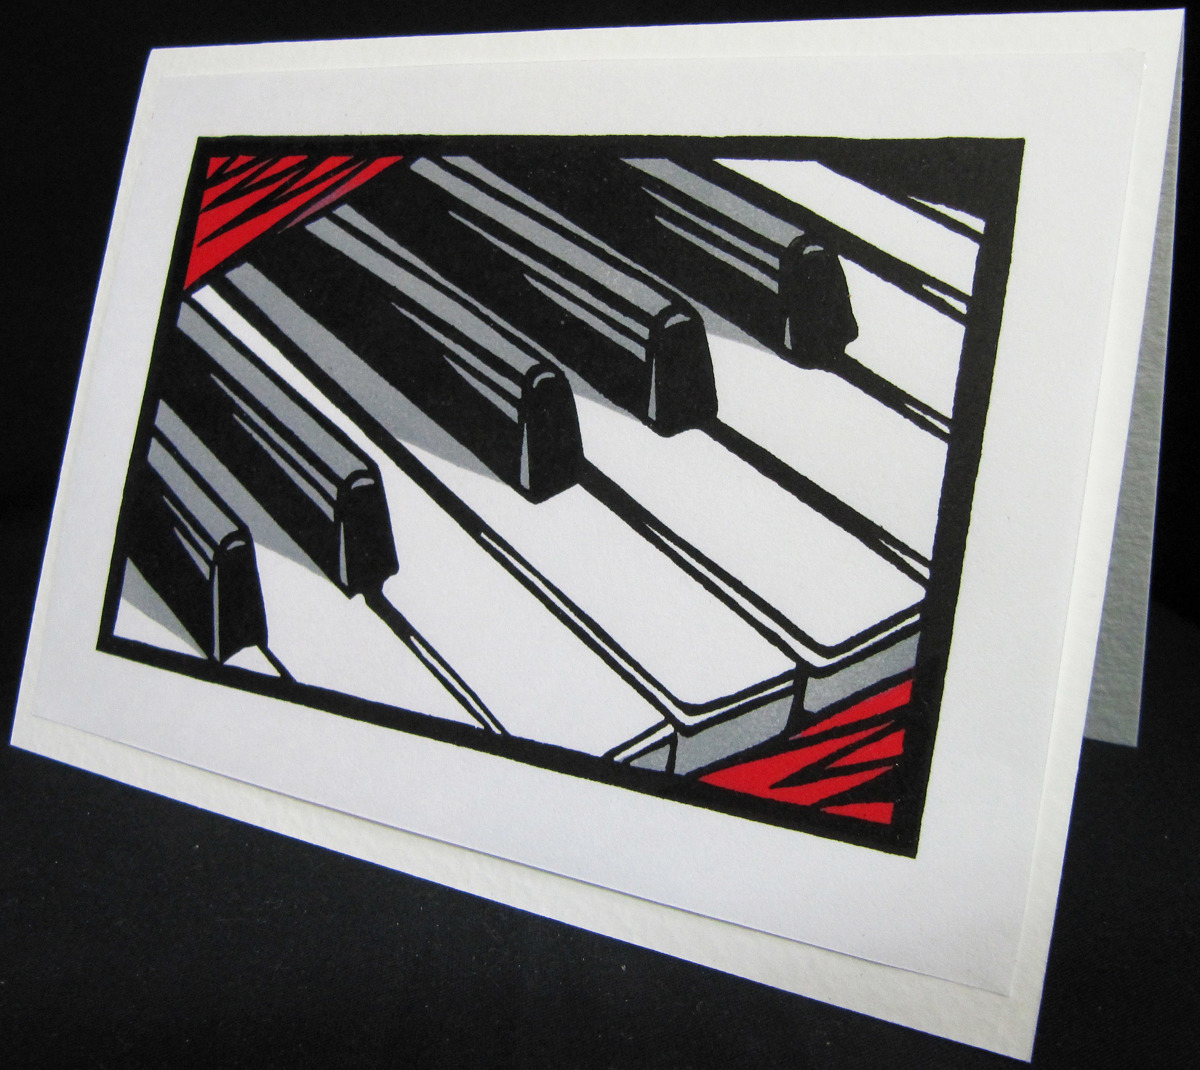 Piano/card (large view)